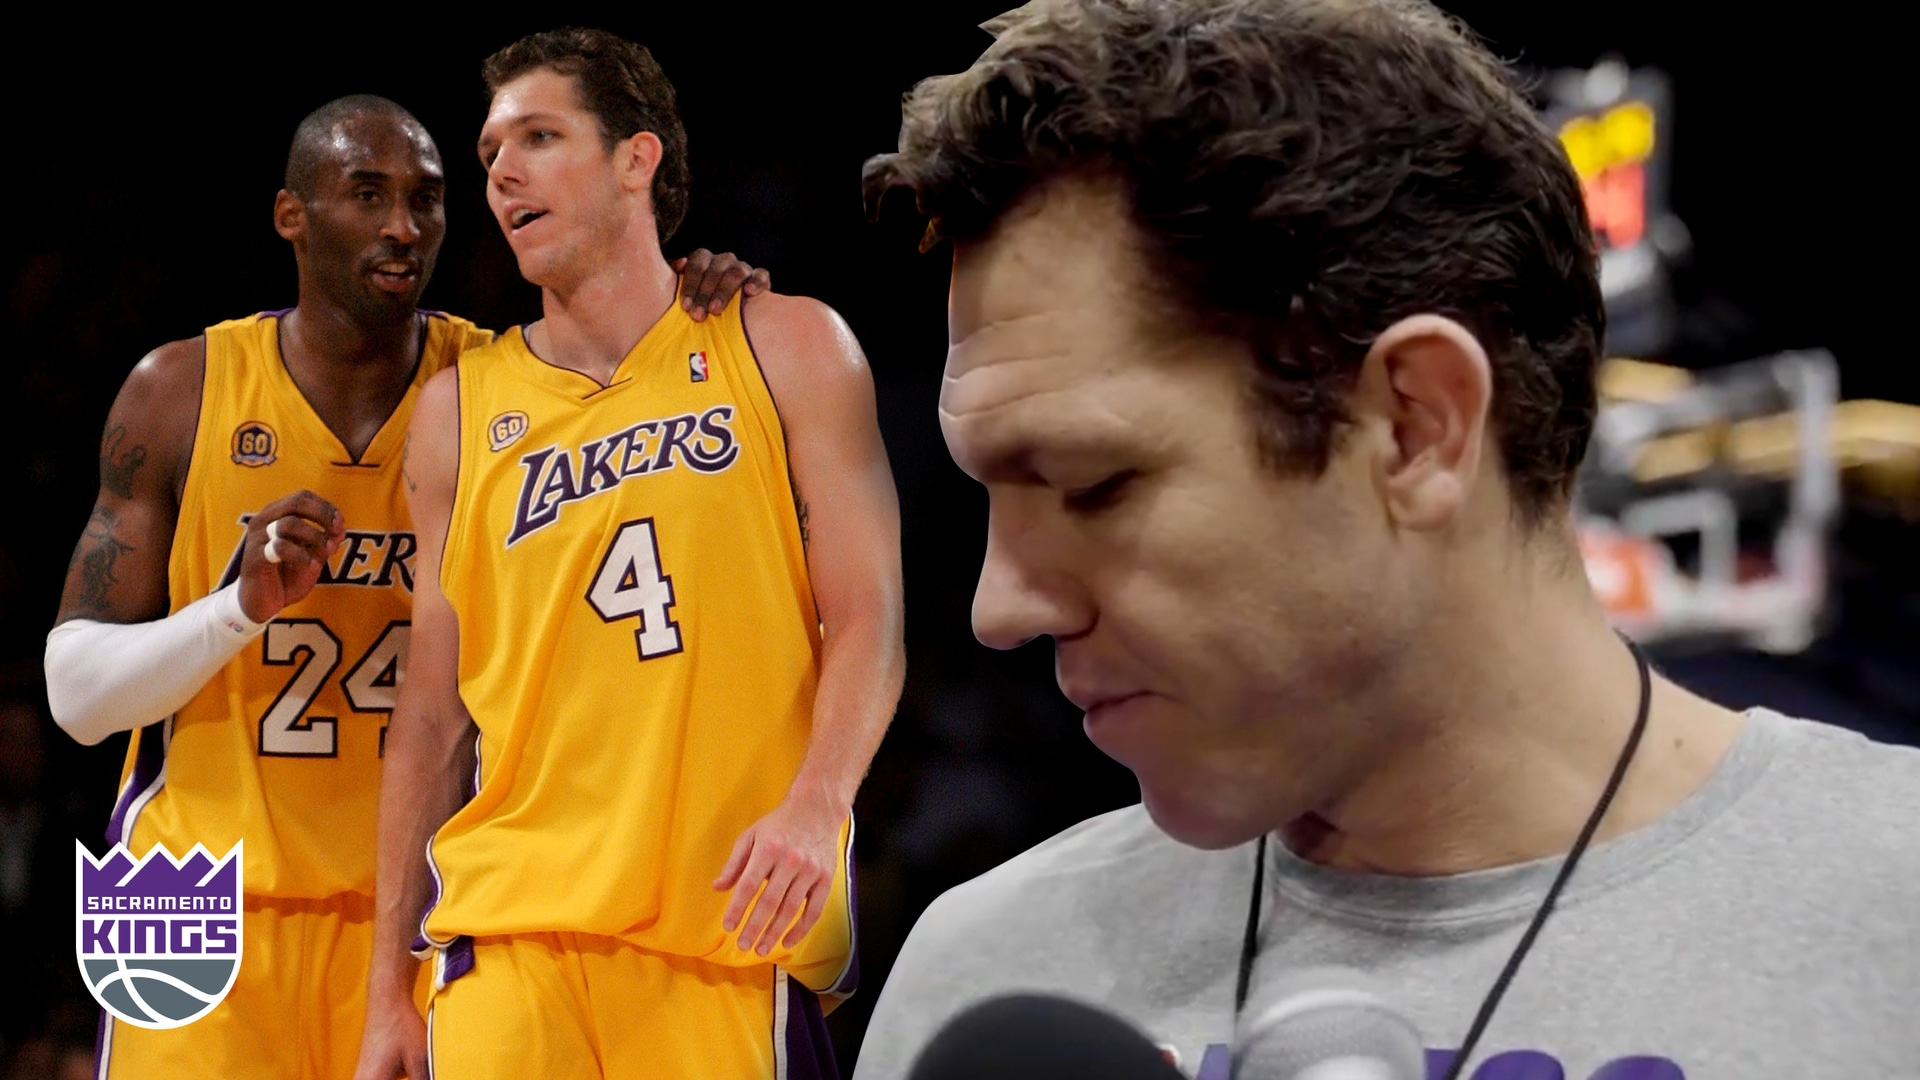 Luke Walton Remembers Kobe Bryant